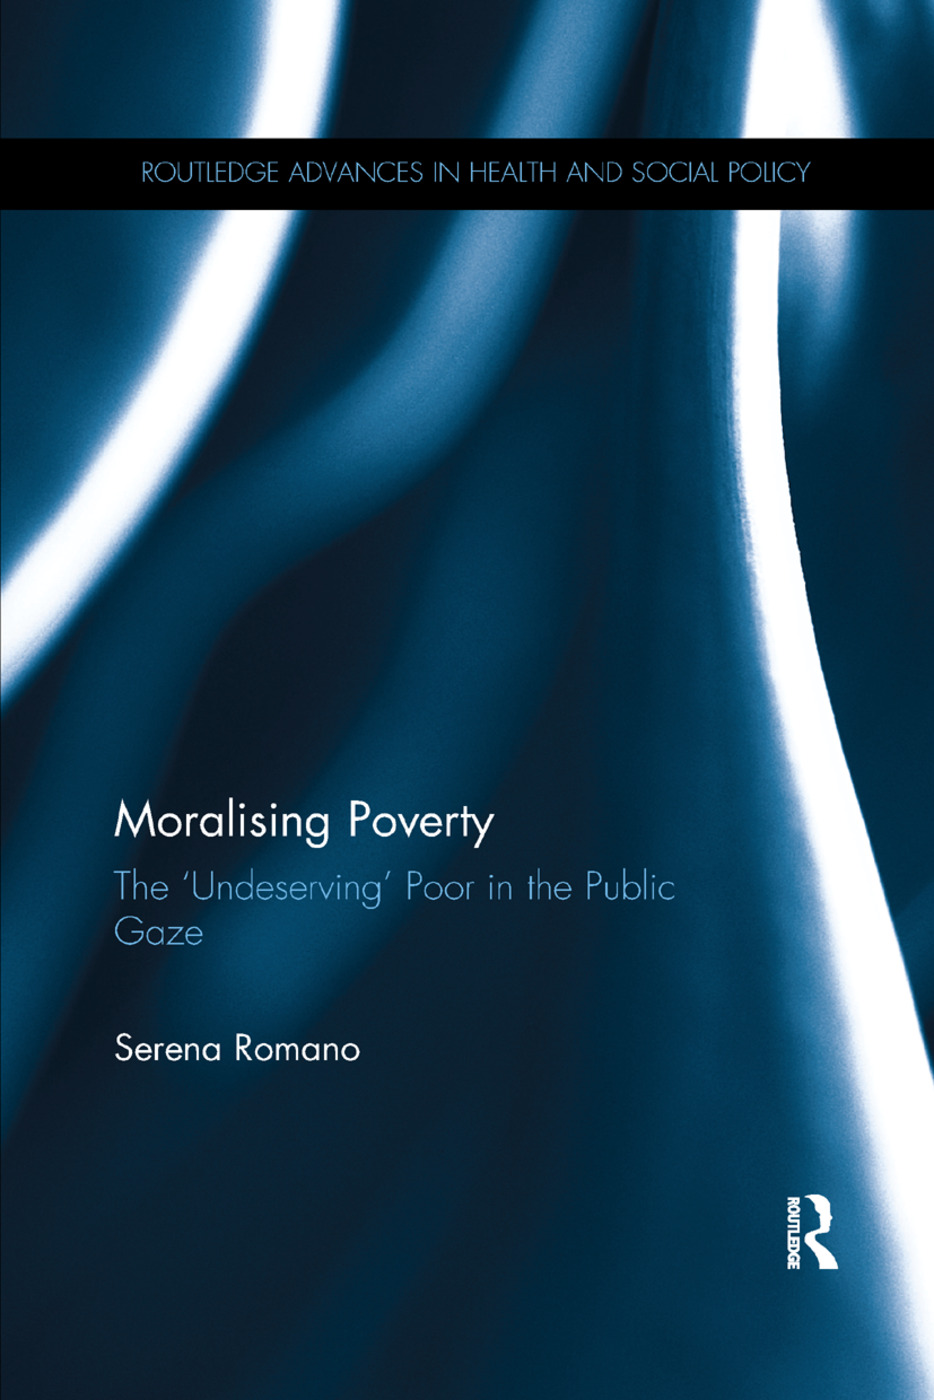 Moralising Poverty: The 'Undeserving' Poor in the Public Gaze book cover